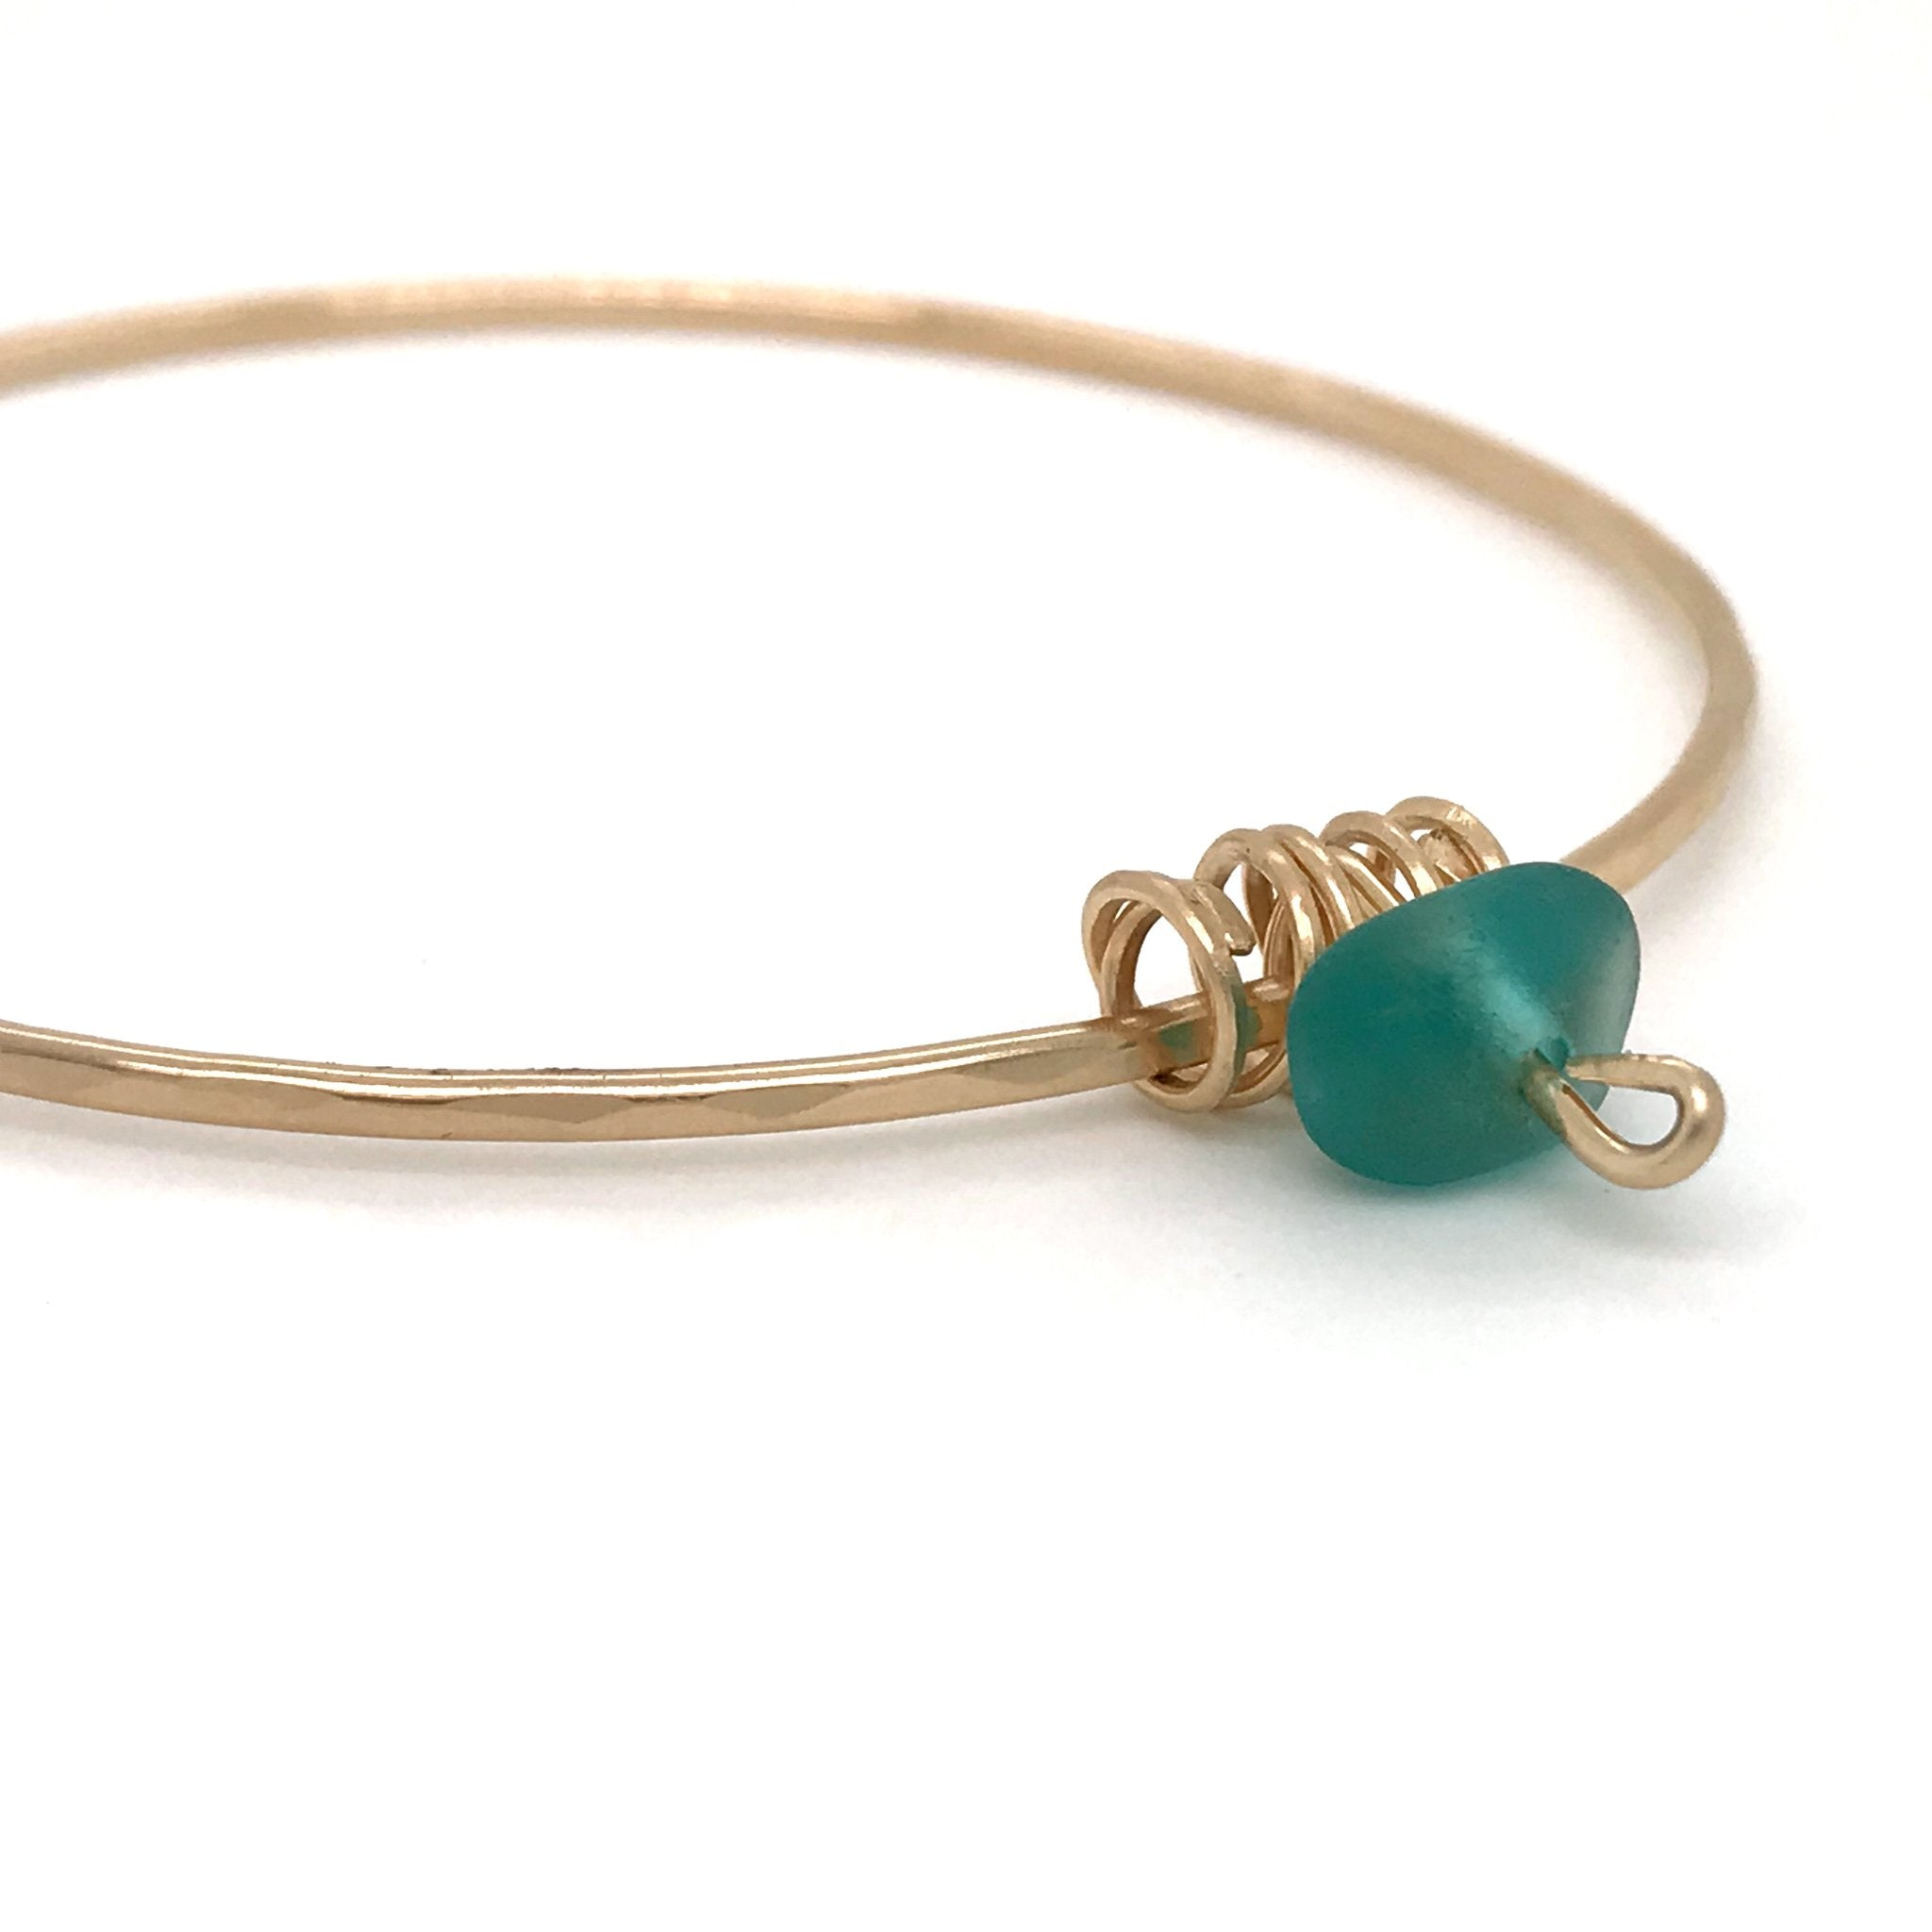 gold bangle with teal seaglass Kriket Broadhurst jewellery